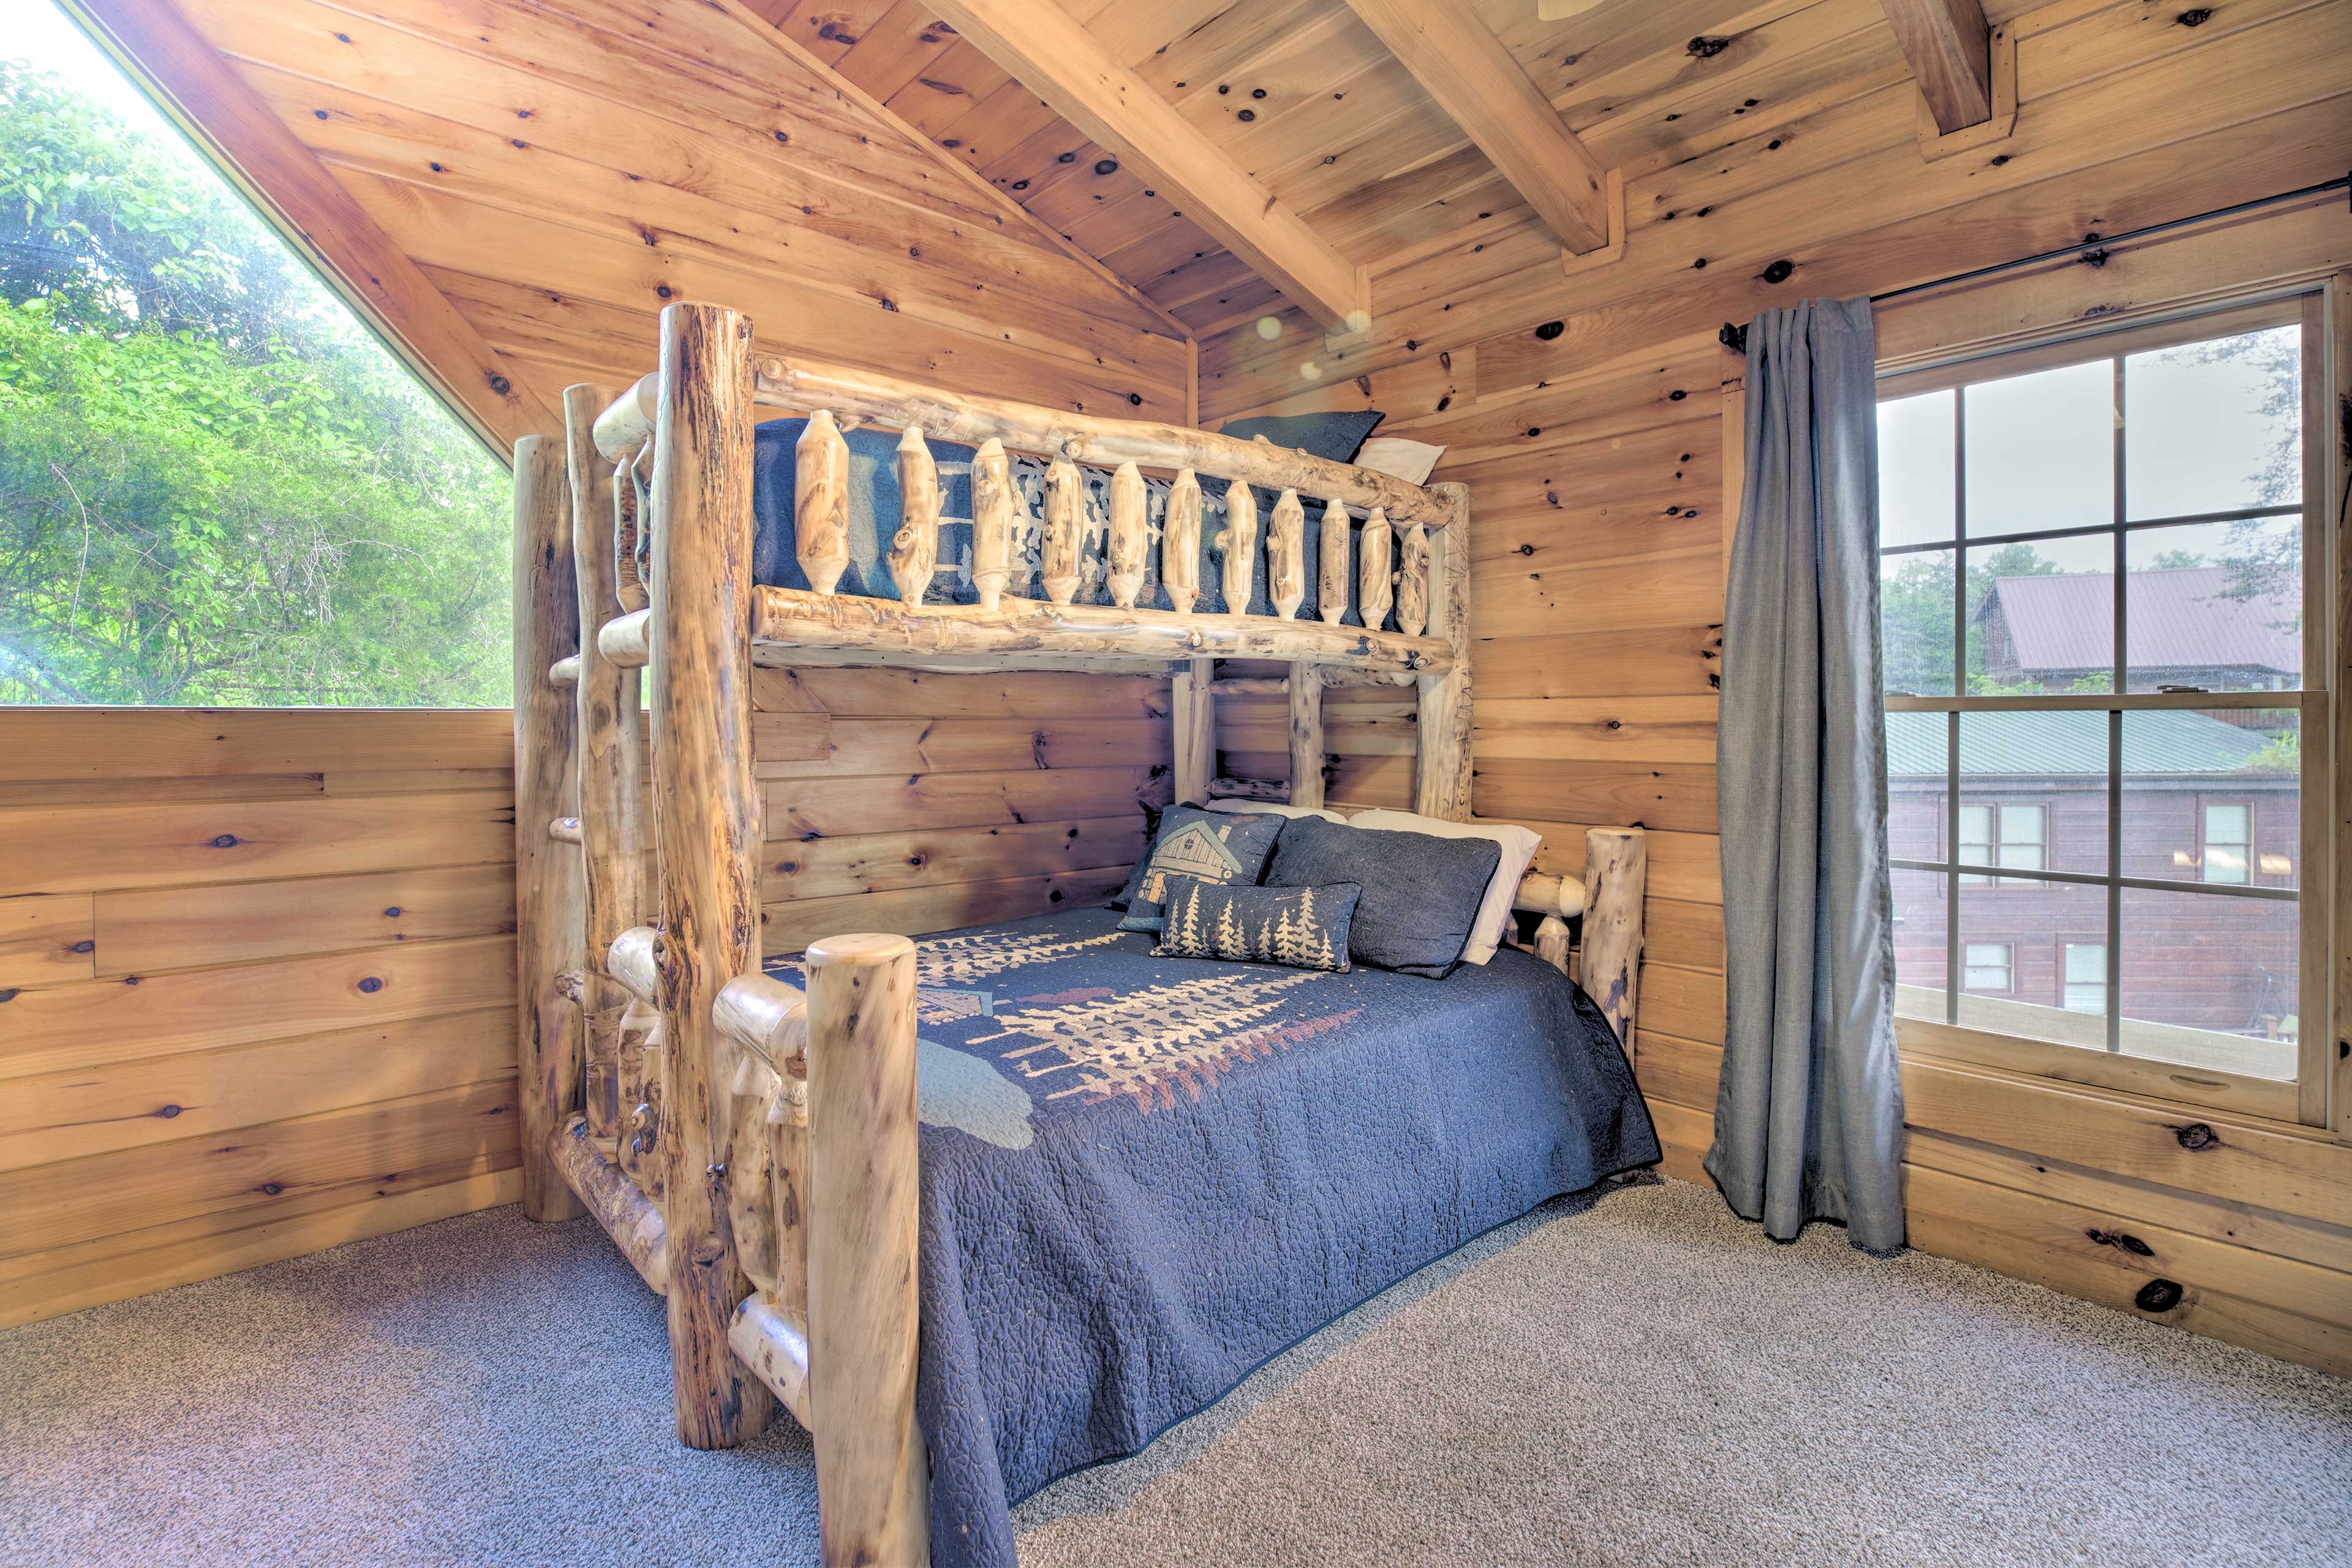 The loft features a twin-over-queen bunk bed.